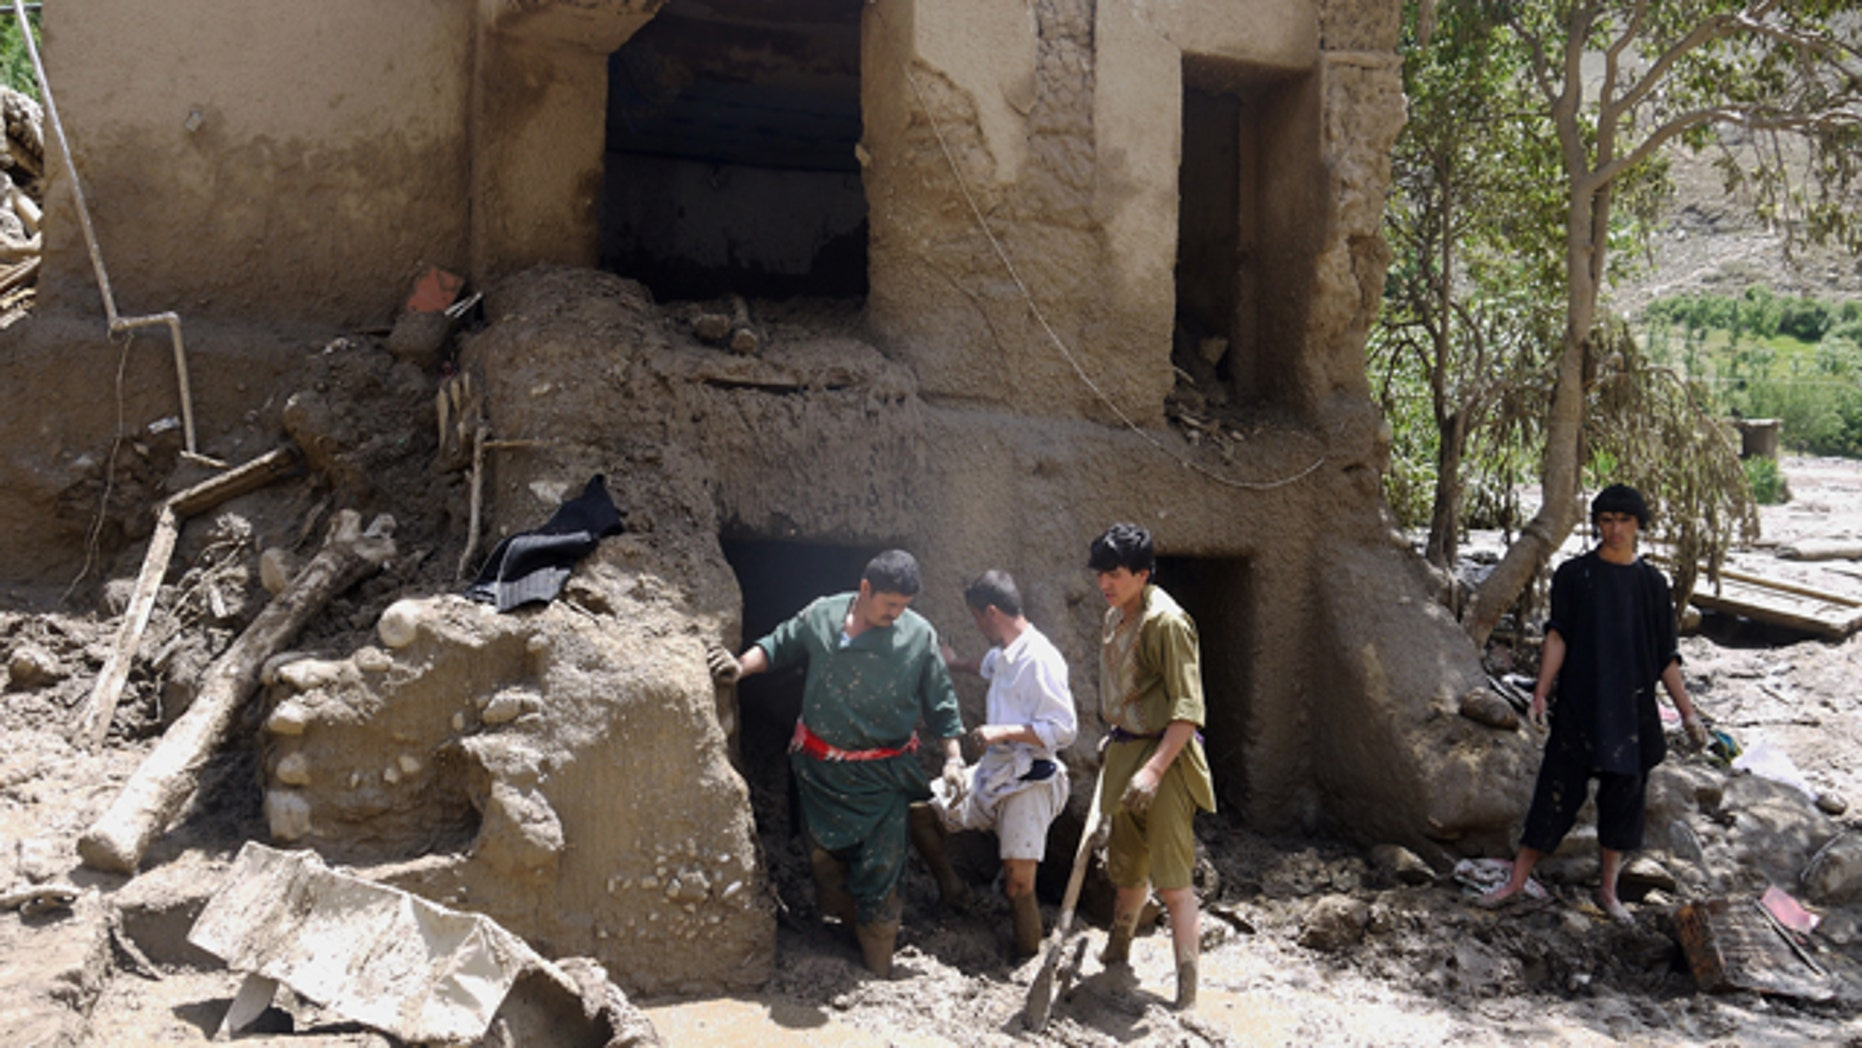 June 7, 2014: Afghans look for their belongings in their house damaged after flooding in the northeastern Baghlan province, north of Kabul. (AP Photo/Javid Basharat)